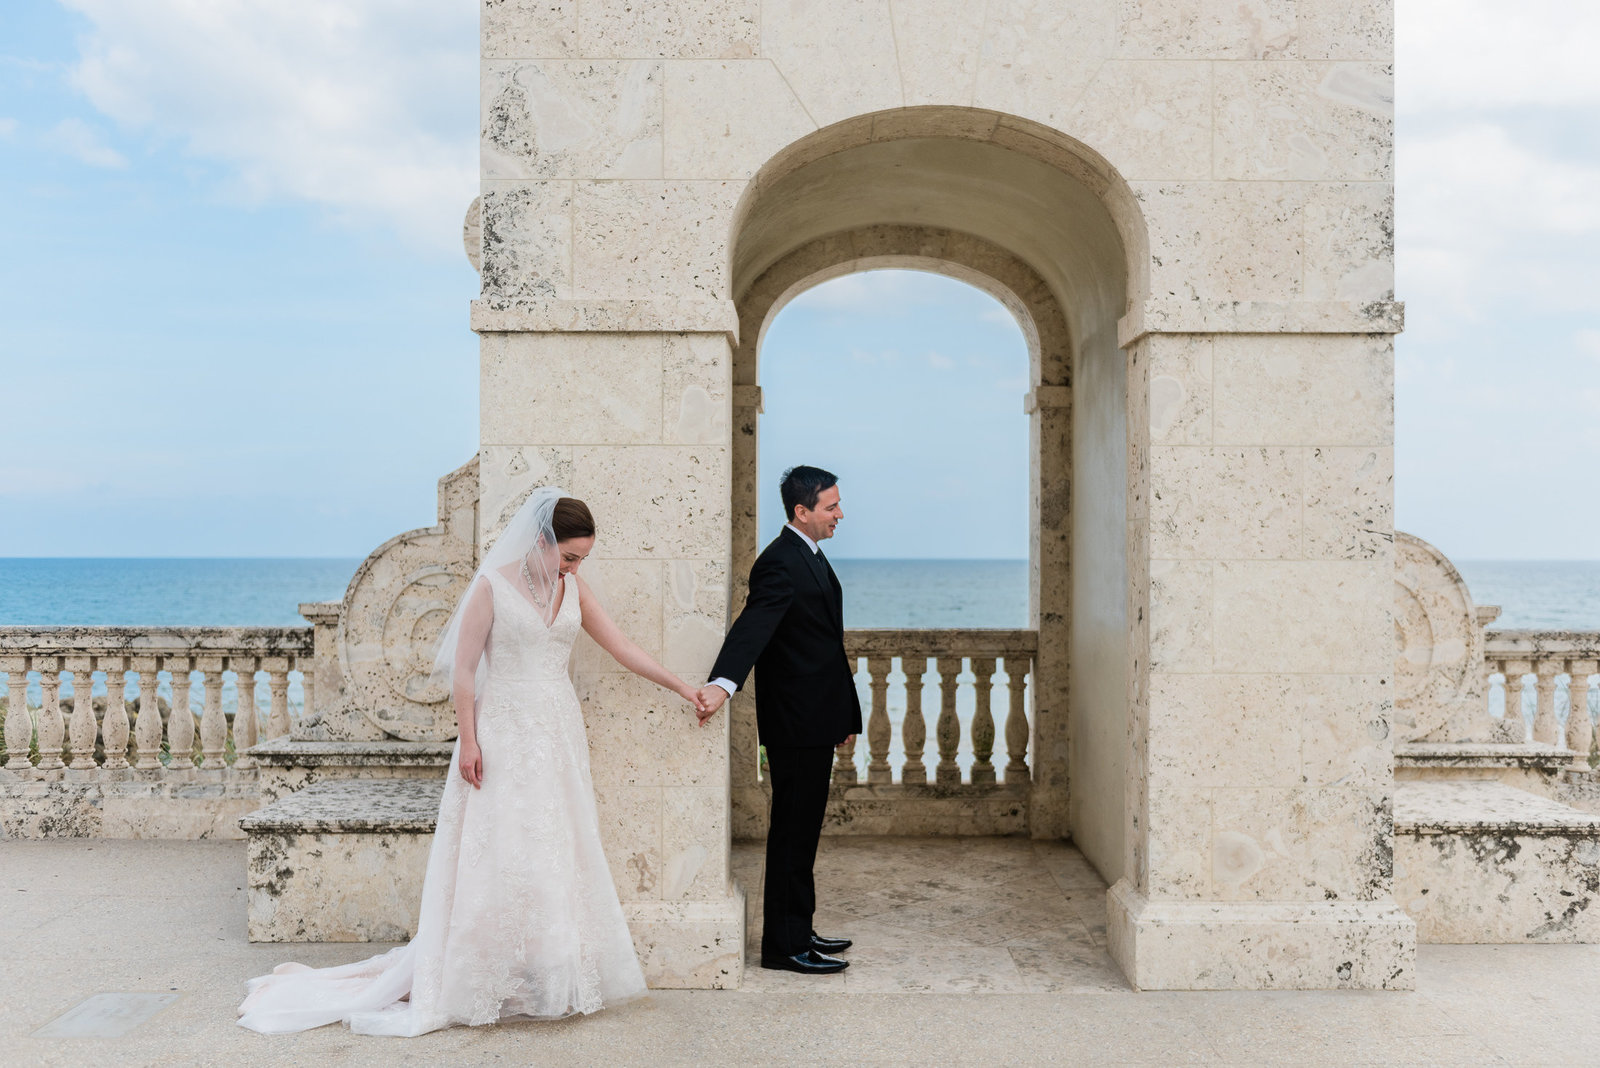 A no look first look at the worth Ave clock tower at a Palm Beach wedding